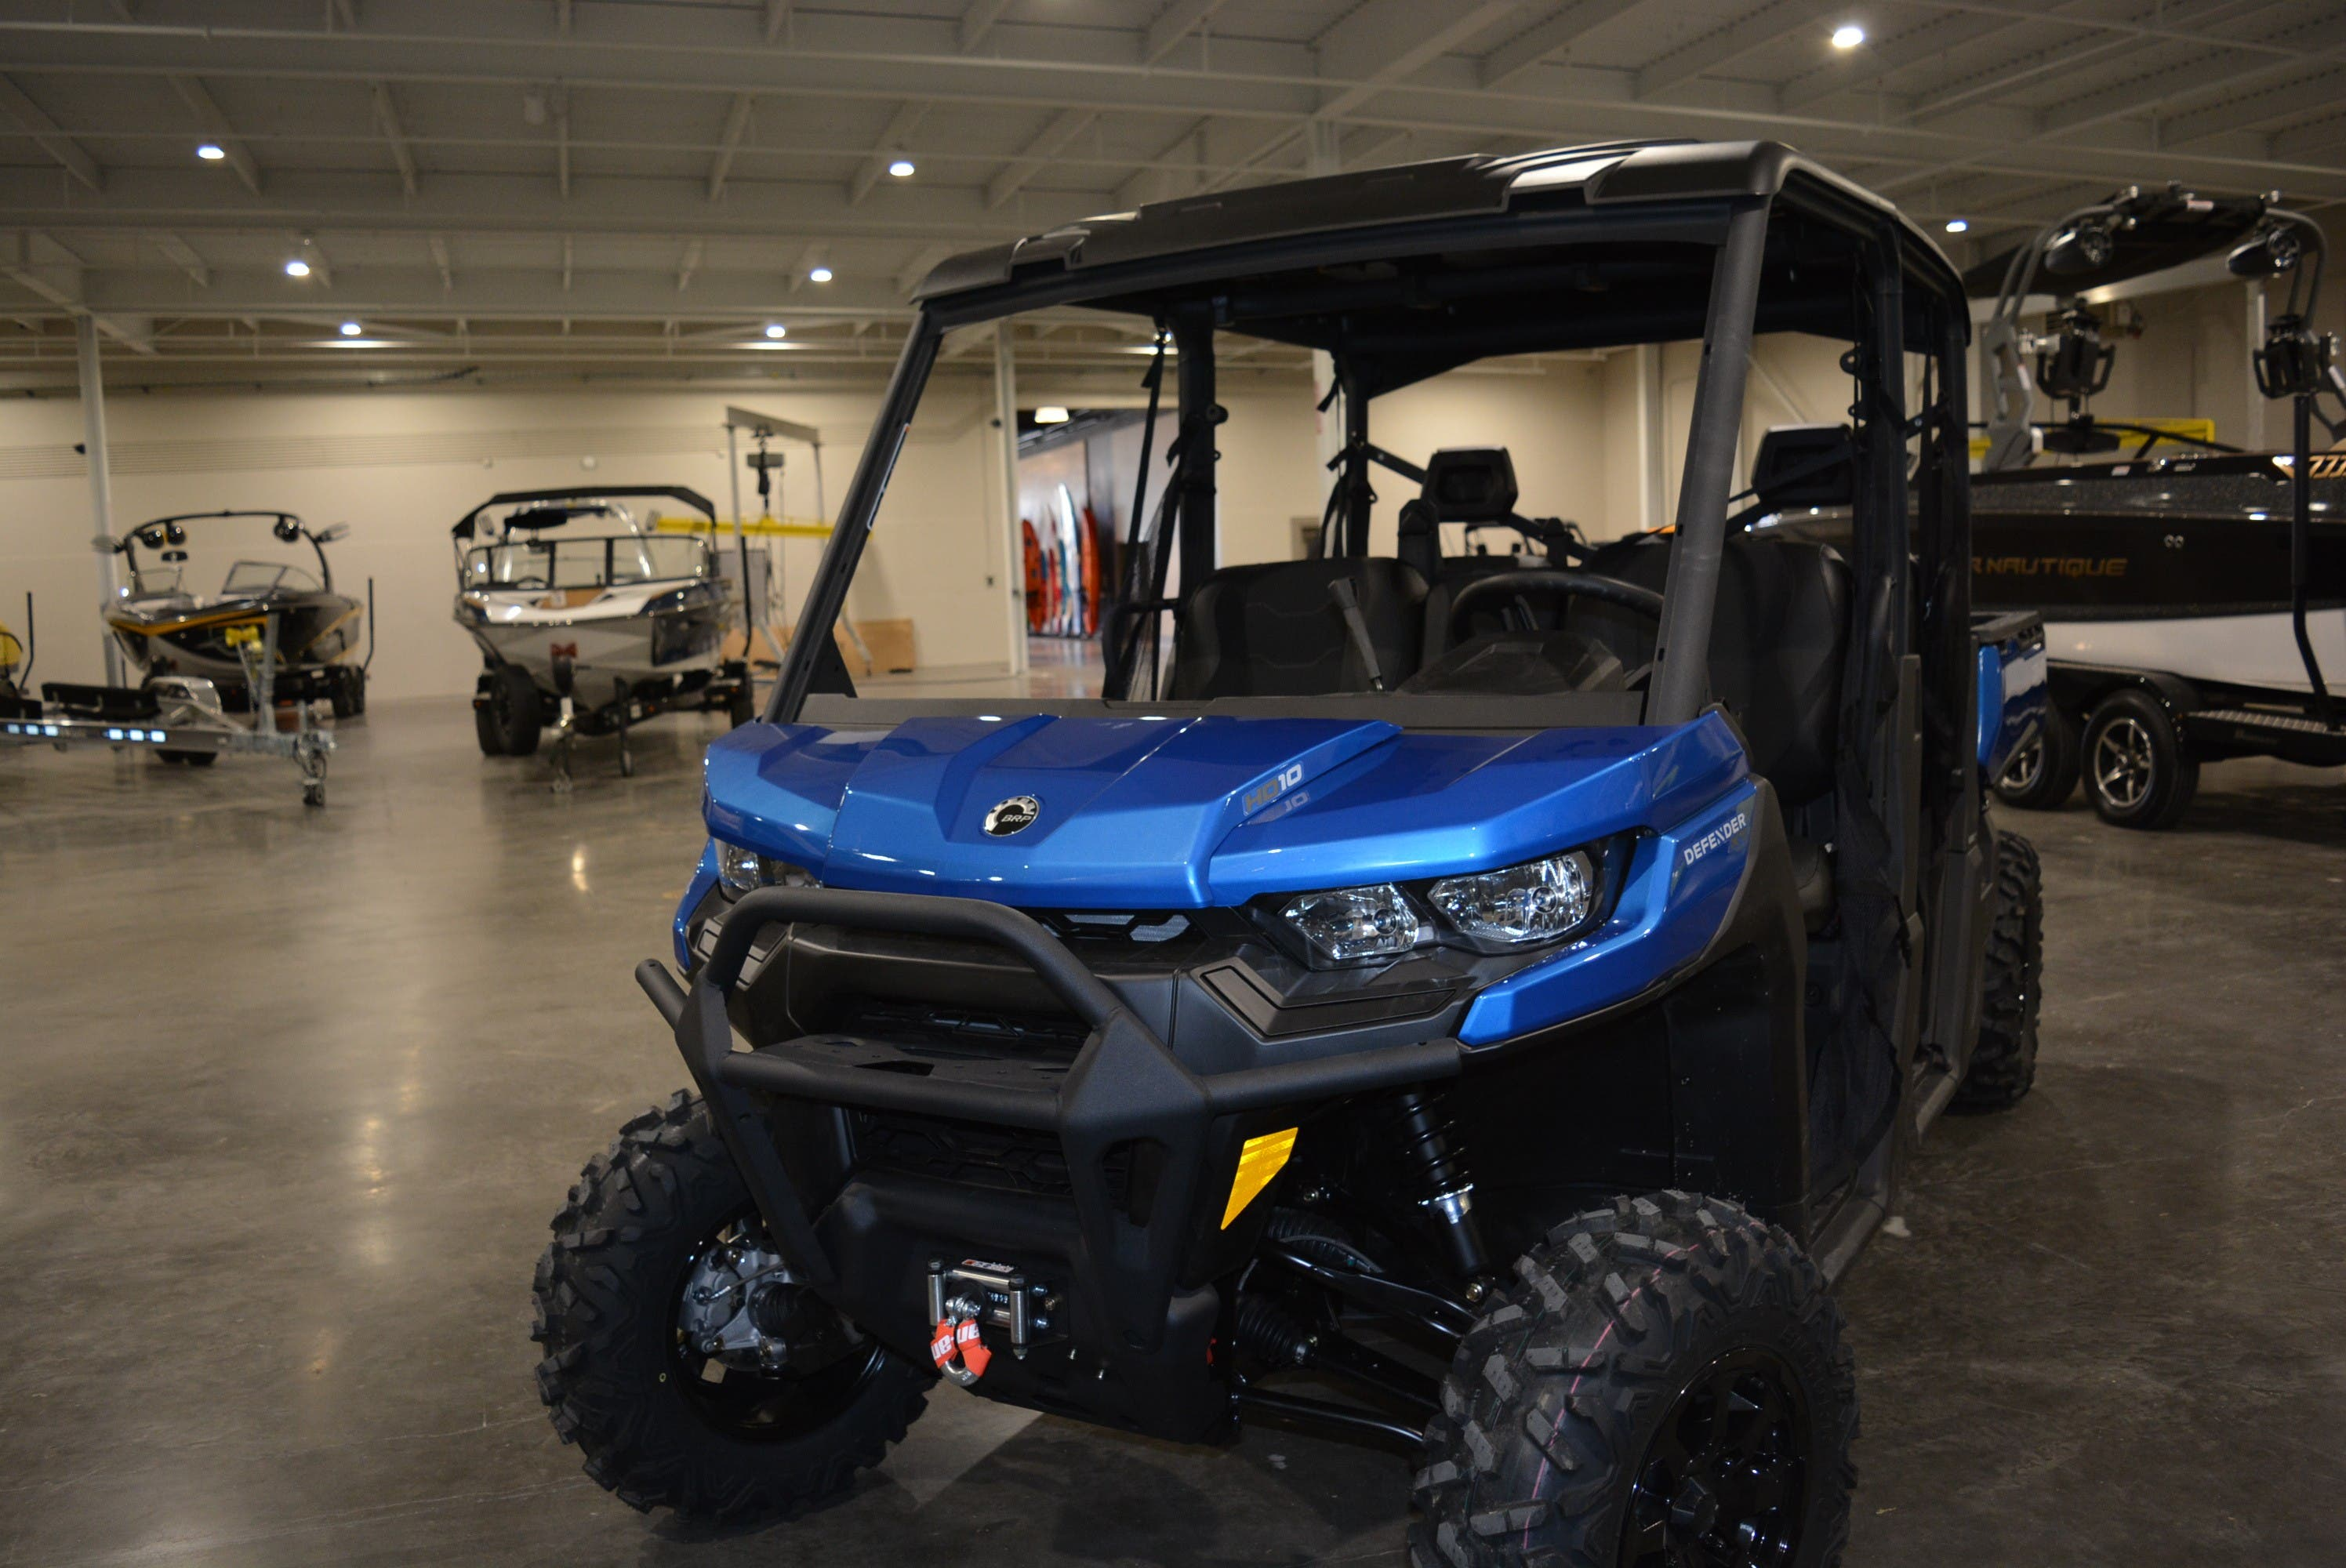 2021 Can-Am Defender X mr HD10 - Inventory - Alabama's #1 ...